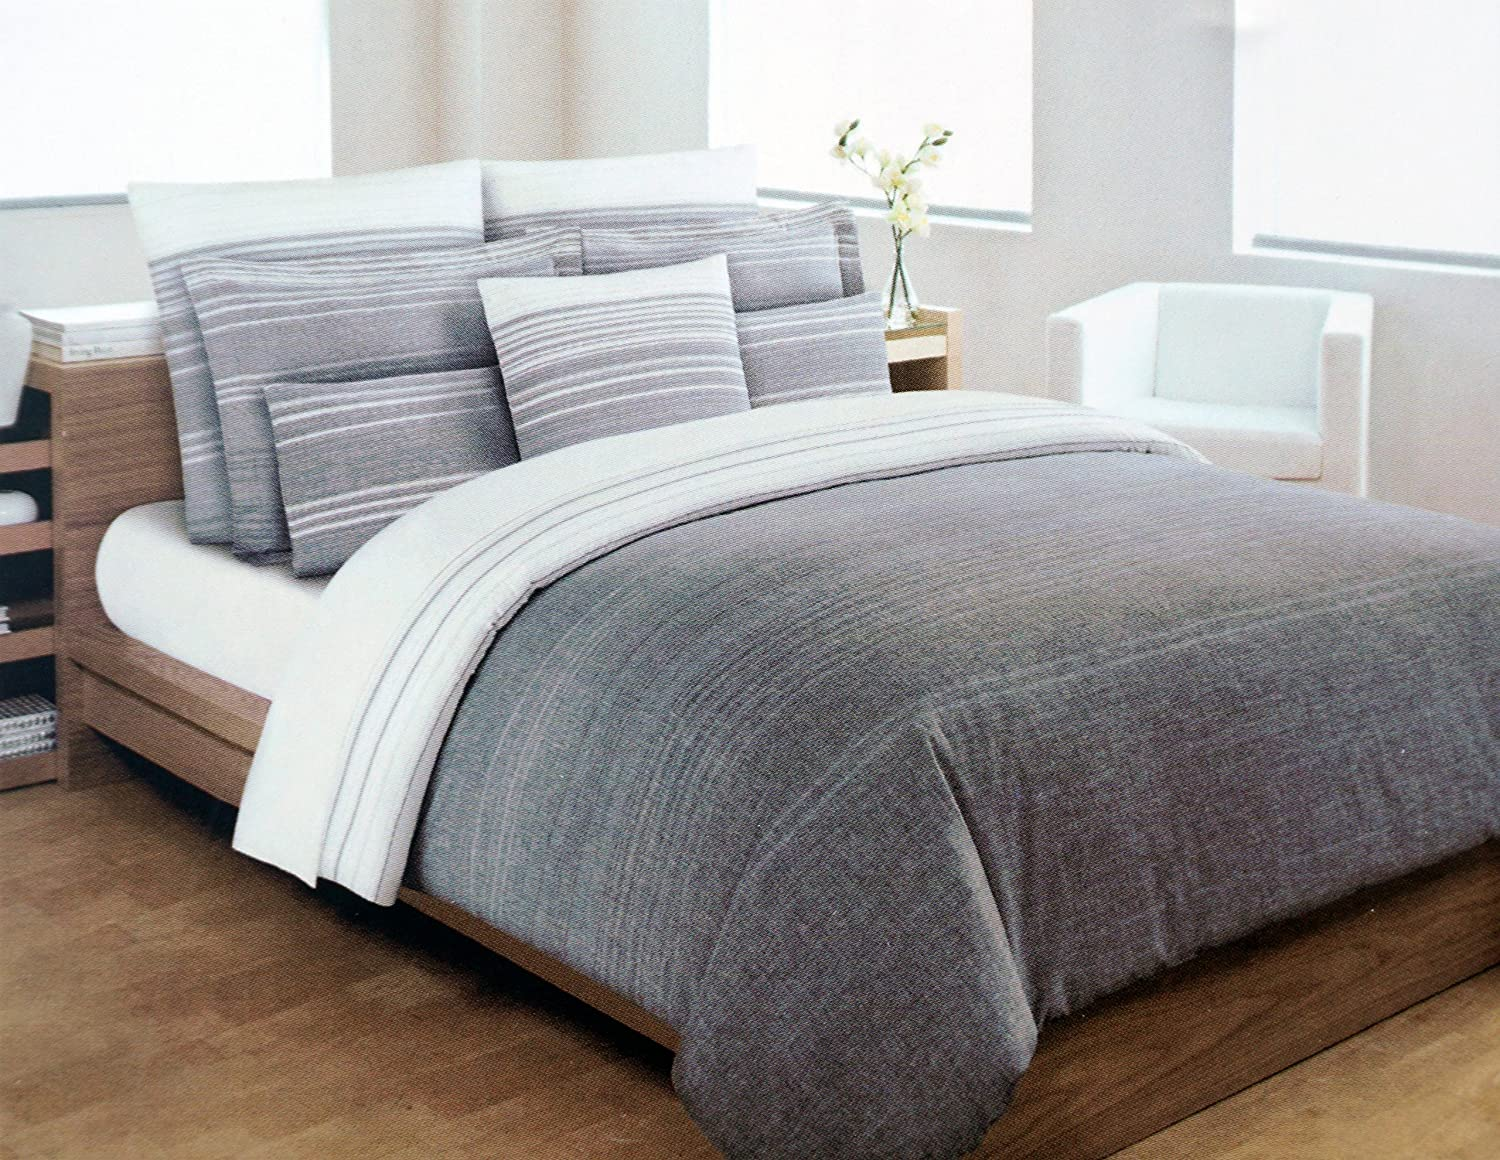 set hampton new duvetcover hamptonstripe dormify stripe sham and cover gray products duvet